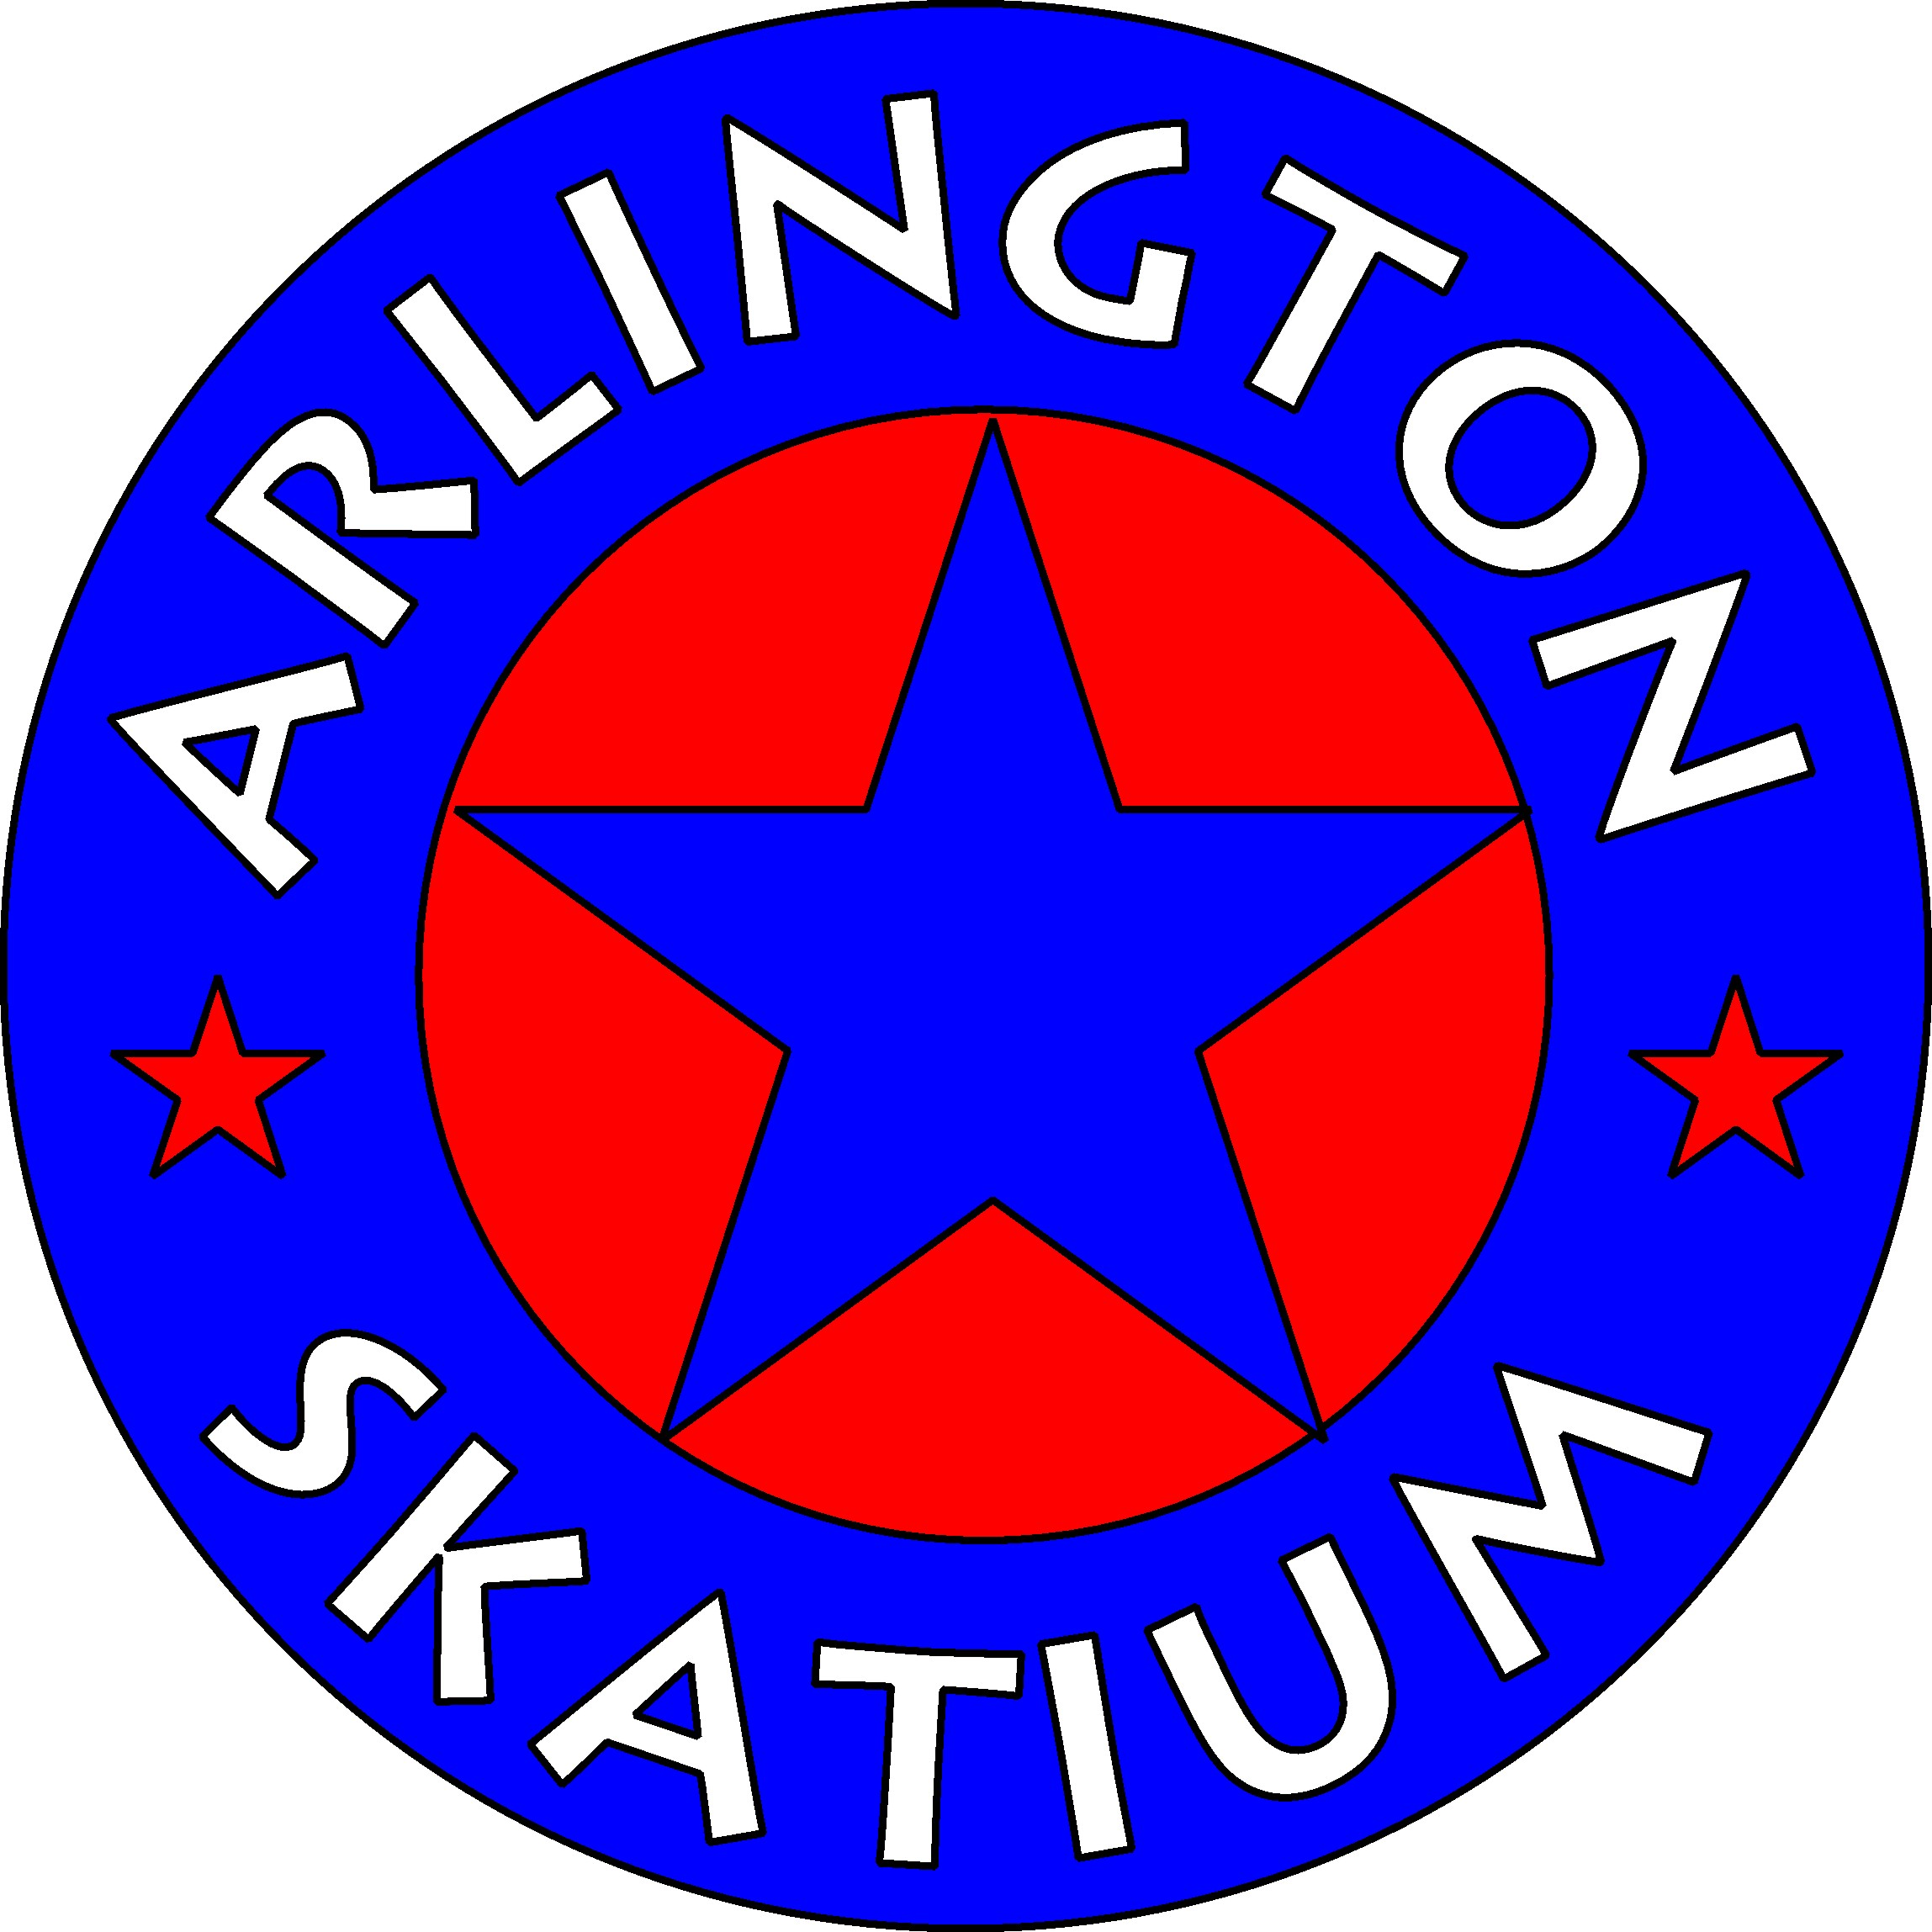 Roller skating rink watauga - Video Arcades Internet Gaming Centers In Fort Worth Tx By Superpages